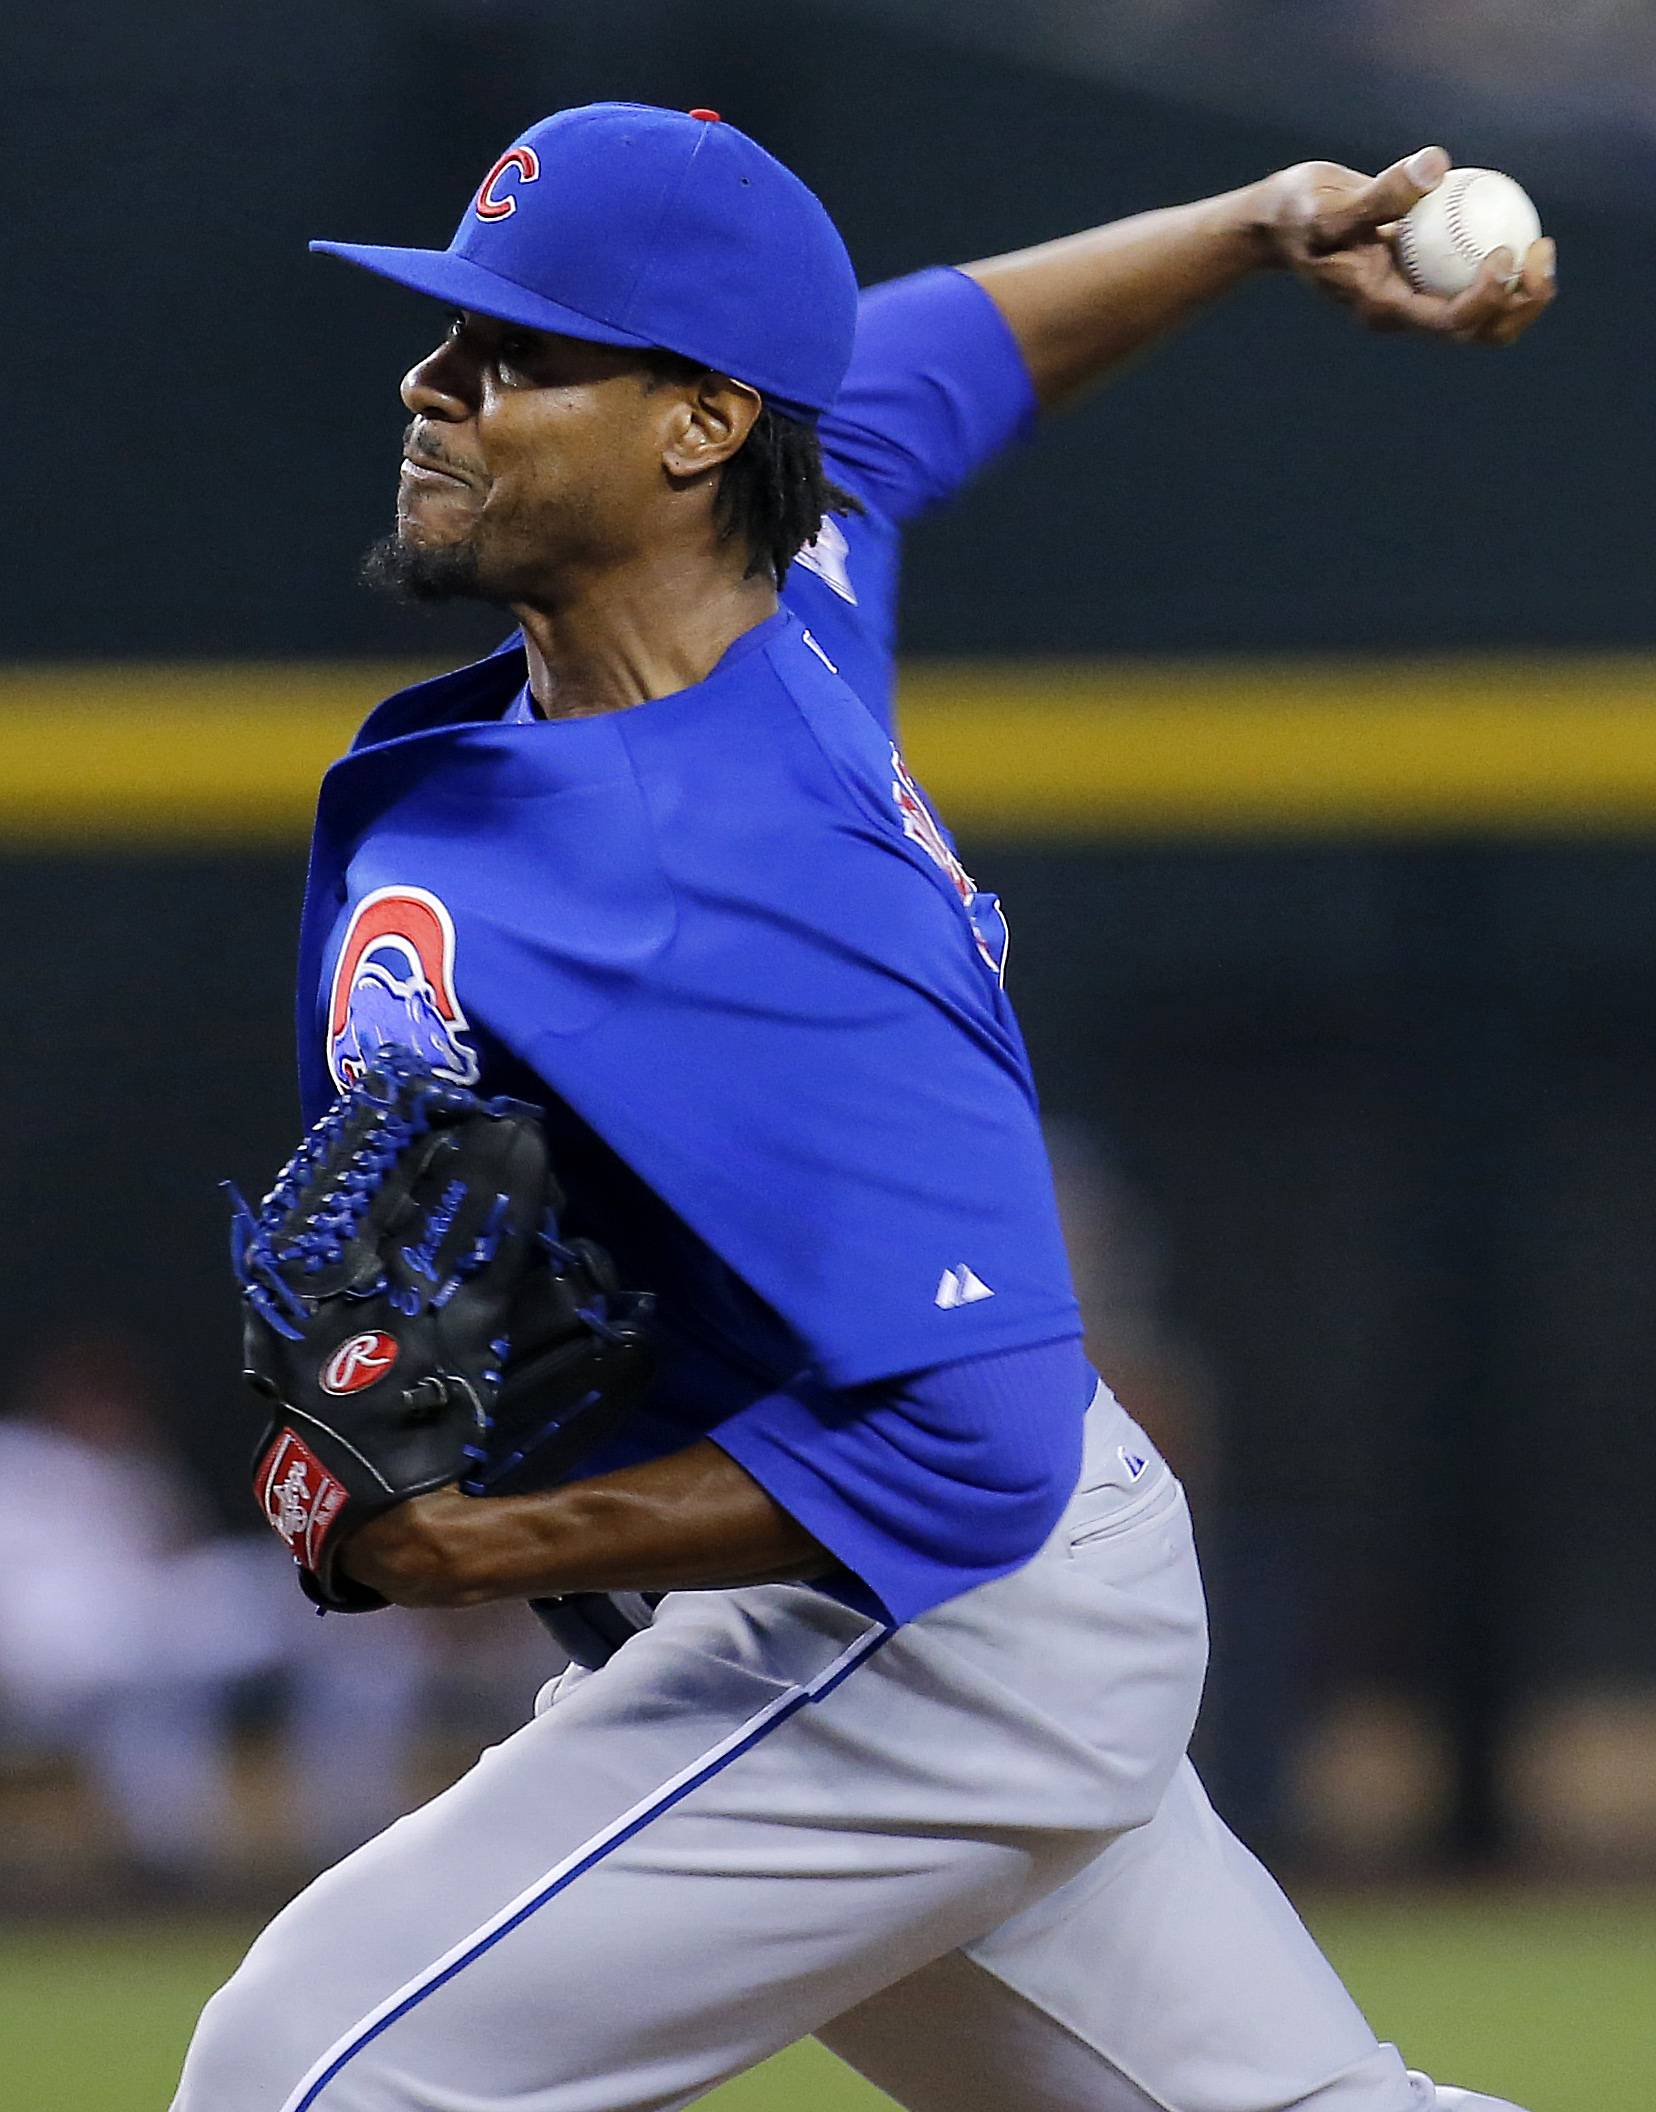 Cubs starter Edwin Jackson has failed to go at least 6 innings in 15 of his 20 starts this year.